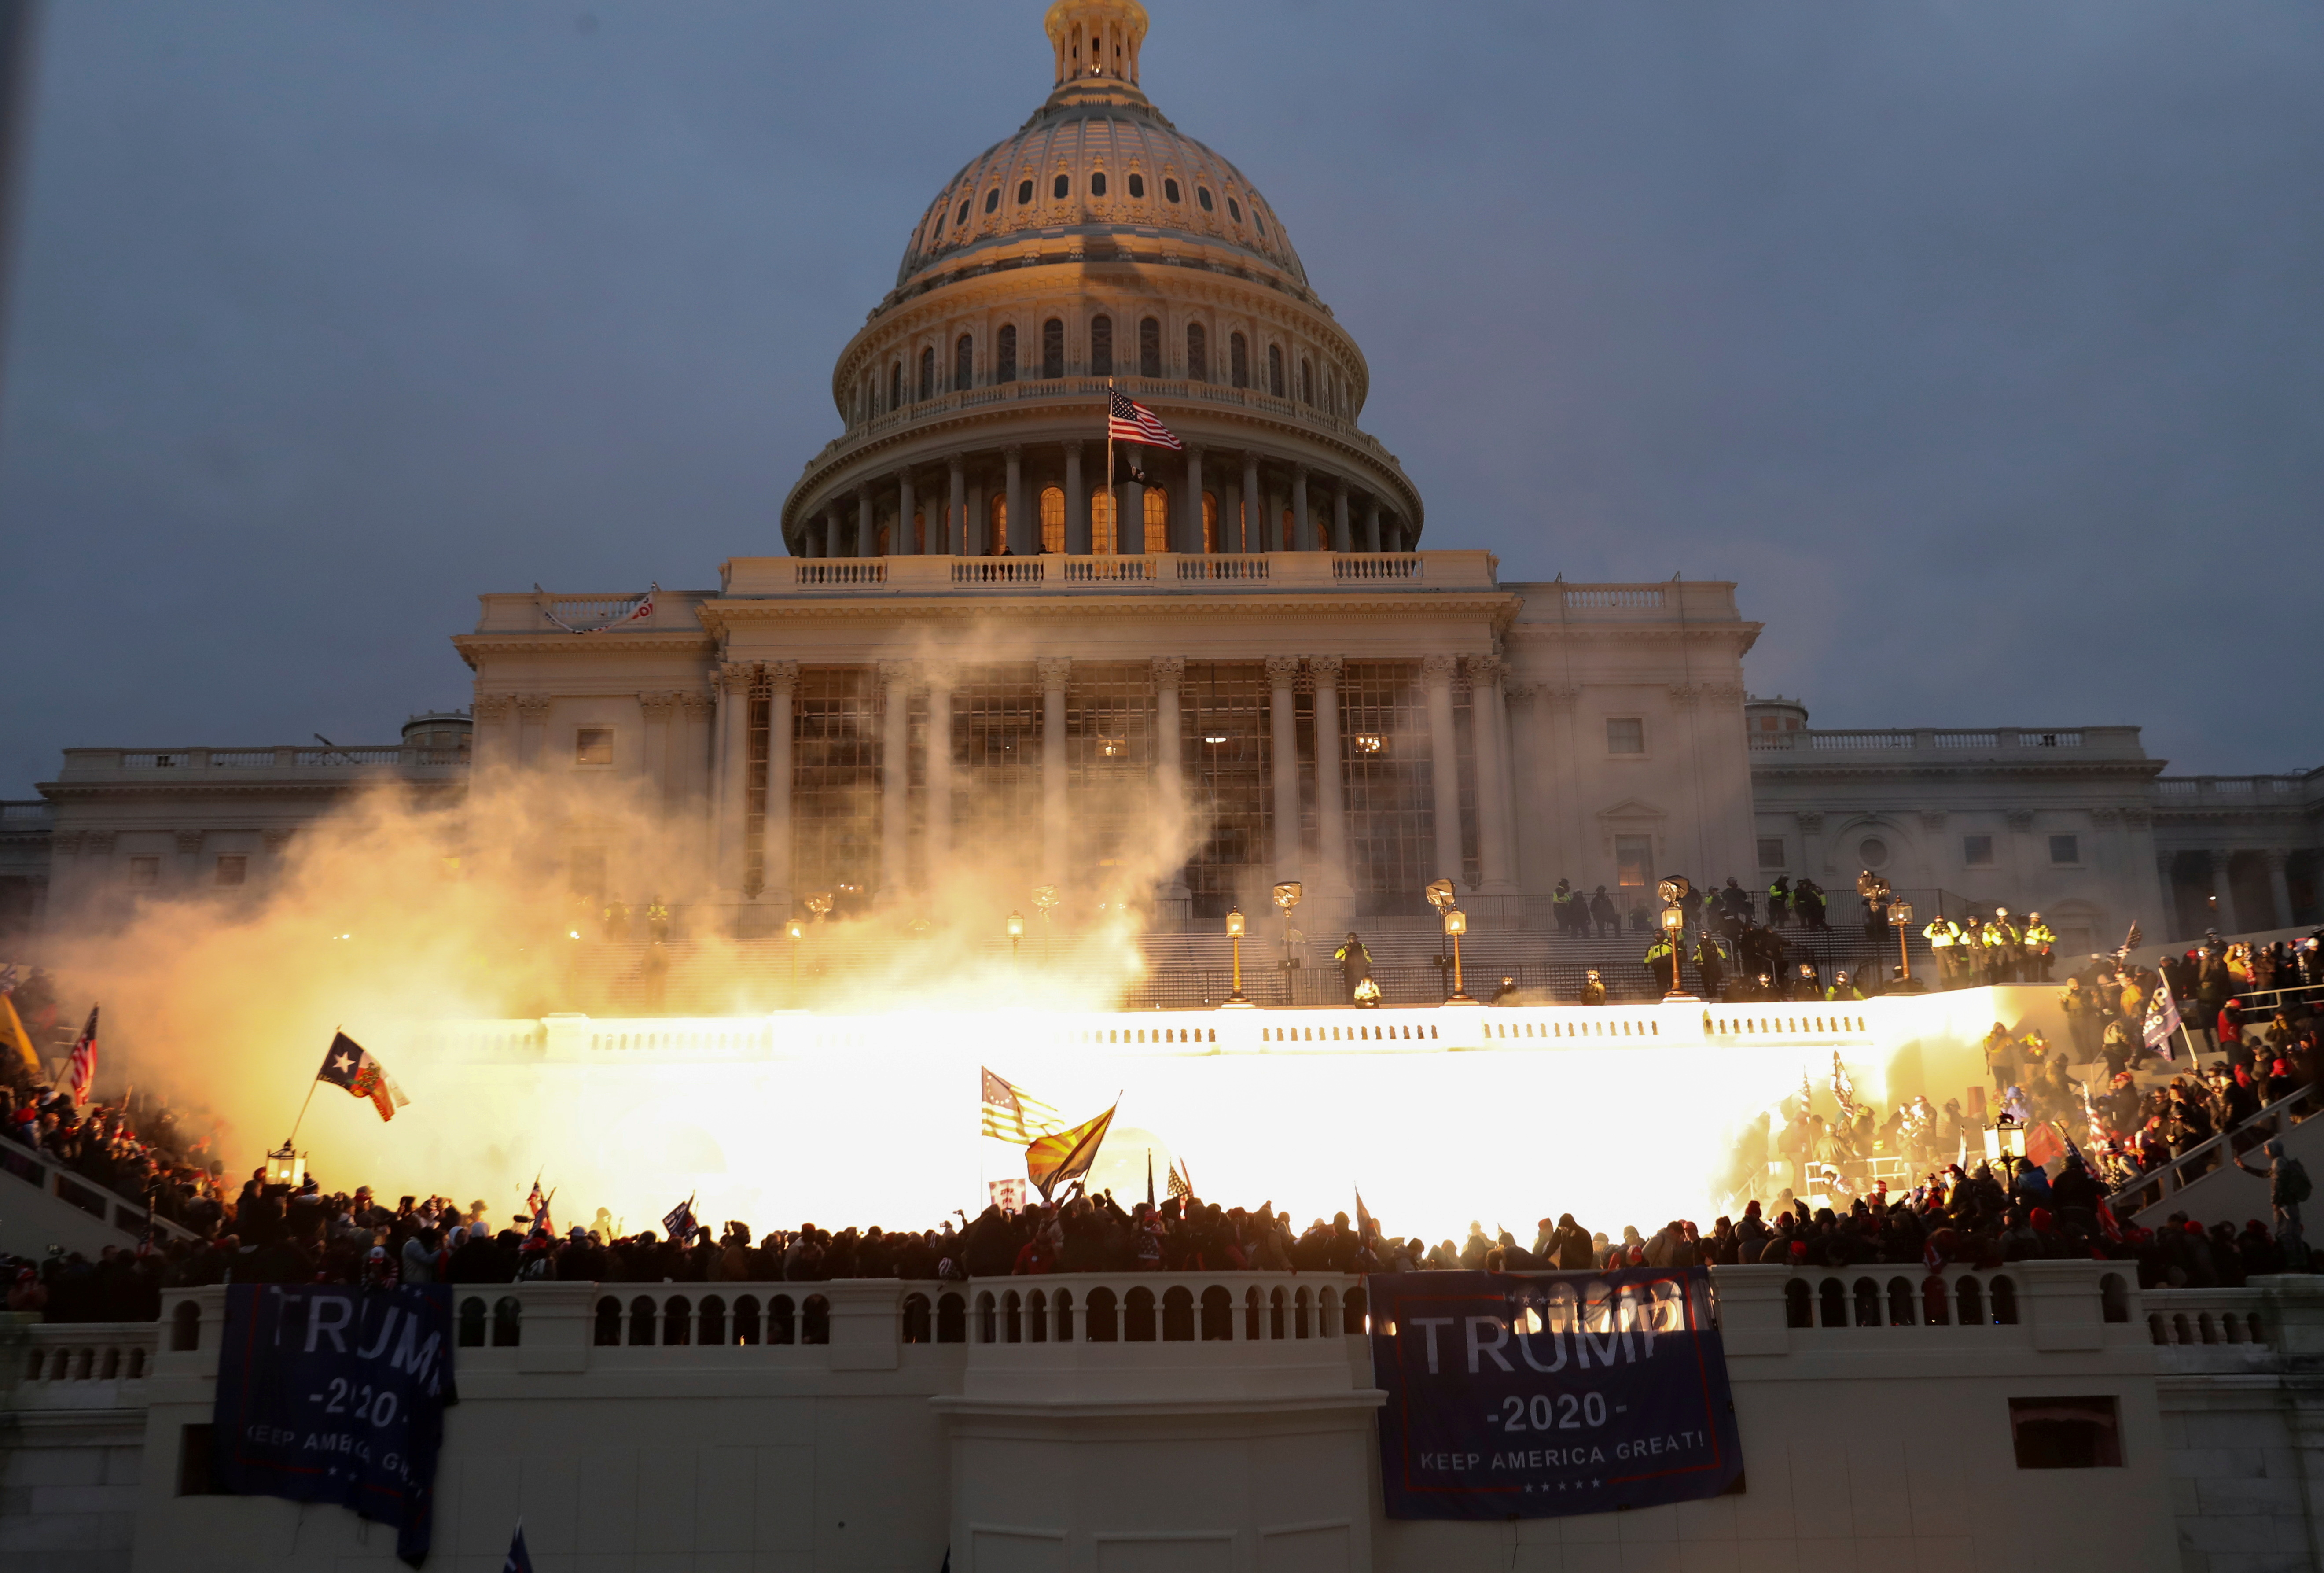 An explosion caused by a police munition is seen while supporters of U.S. President Donald Trump gather in front of the U.S. Capitol Building in Washington, DC, on January 6, 2021.